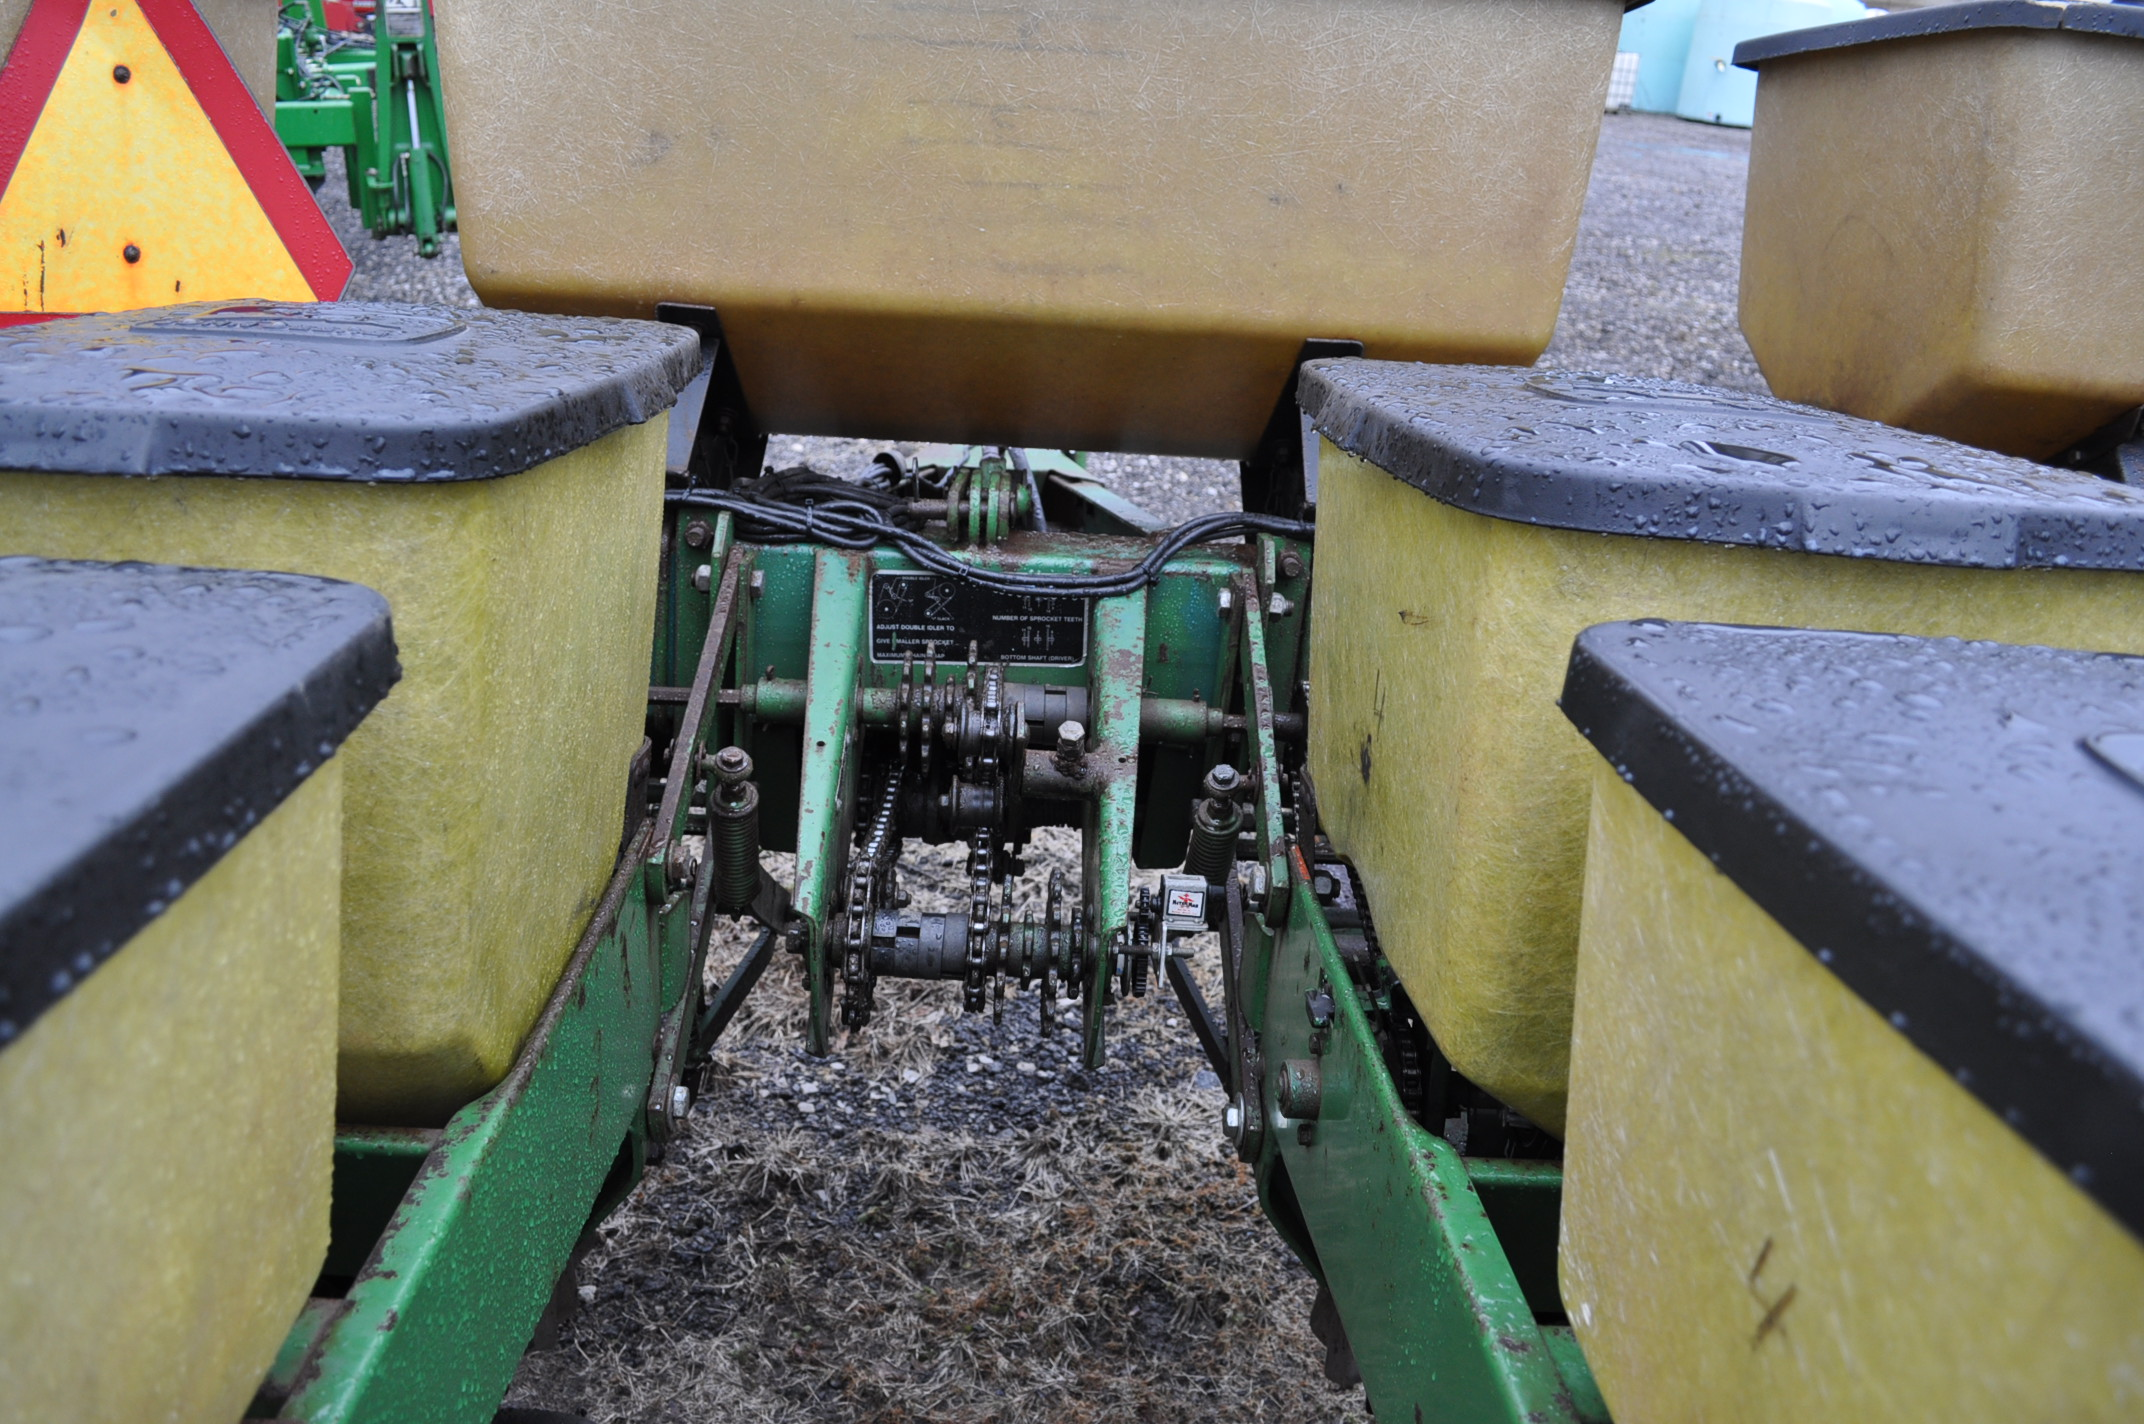 "John Deere 7000 corn planter, 6 row 30"", 2x2 dry fertilizer, no-till coulters, PP finger pickup - Image 9 of 11"